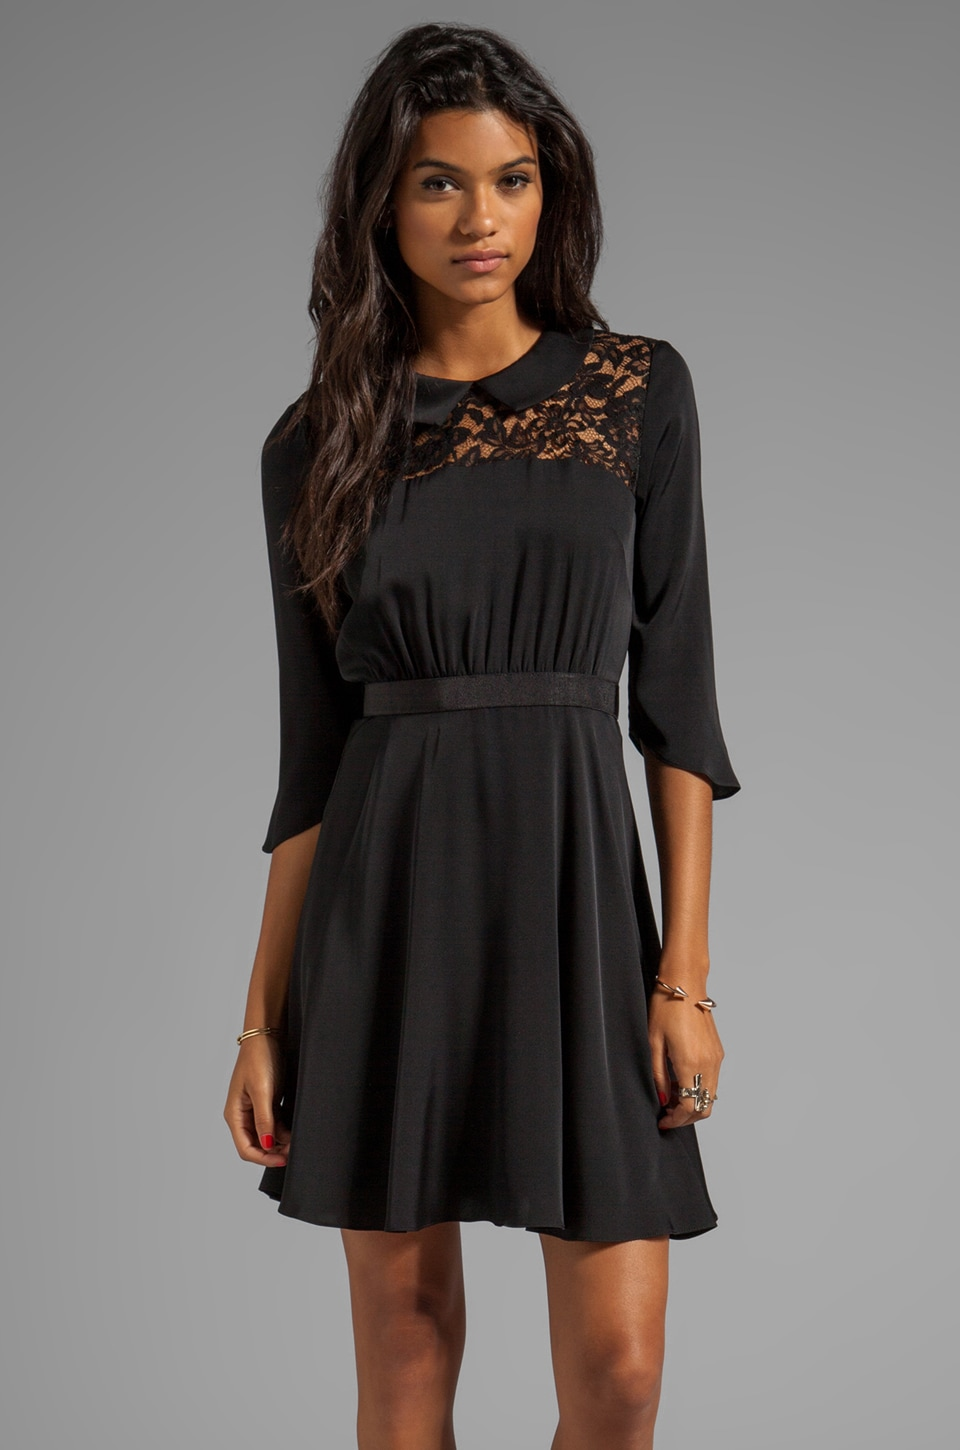 MILLY Stretch Matte Silk Lace Panel Dress in Black